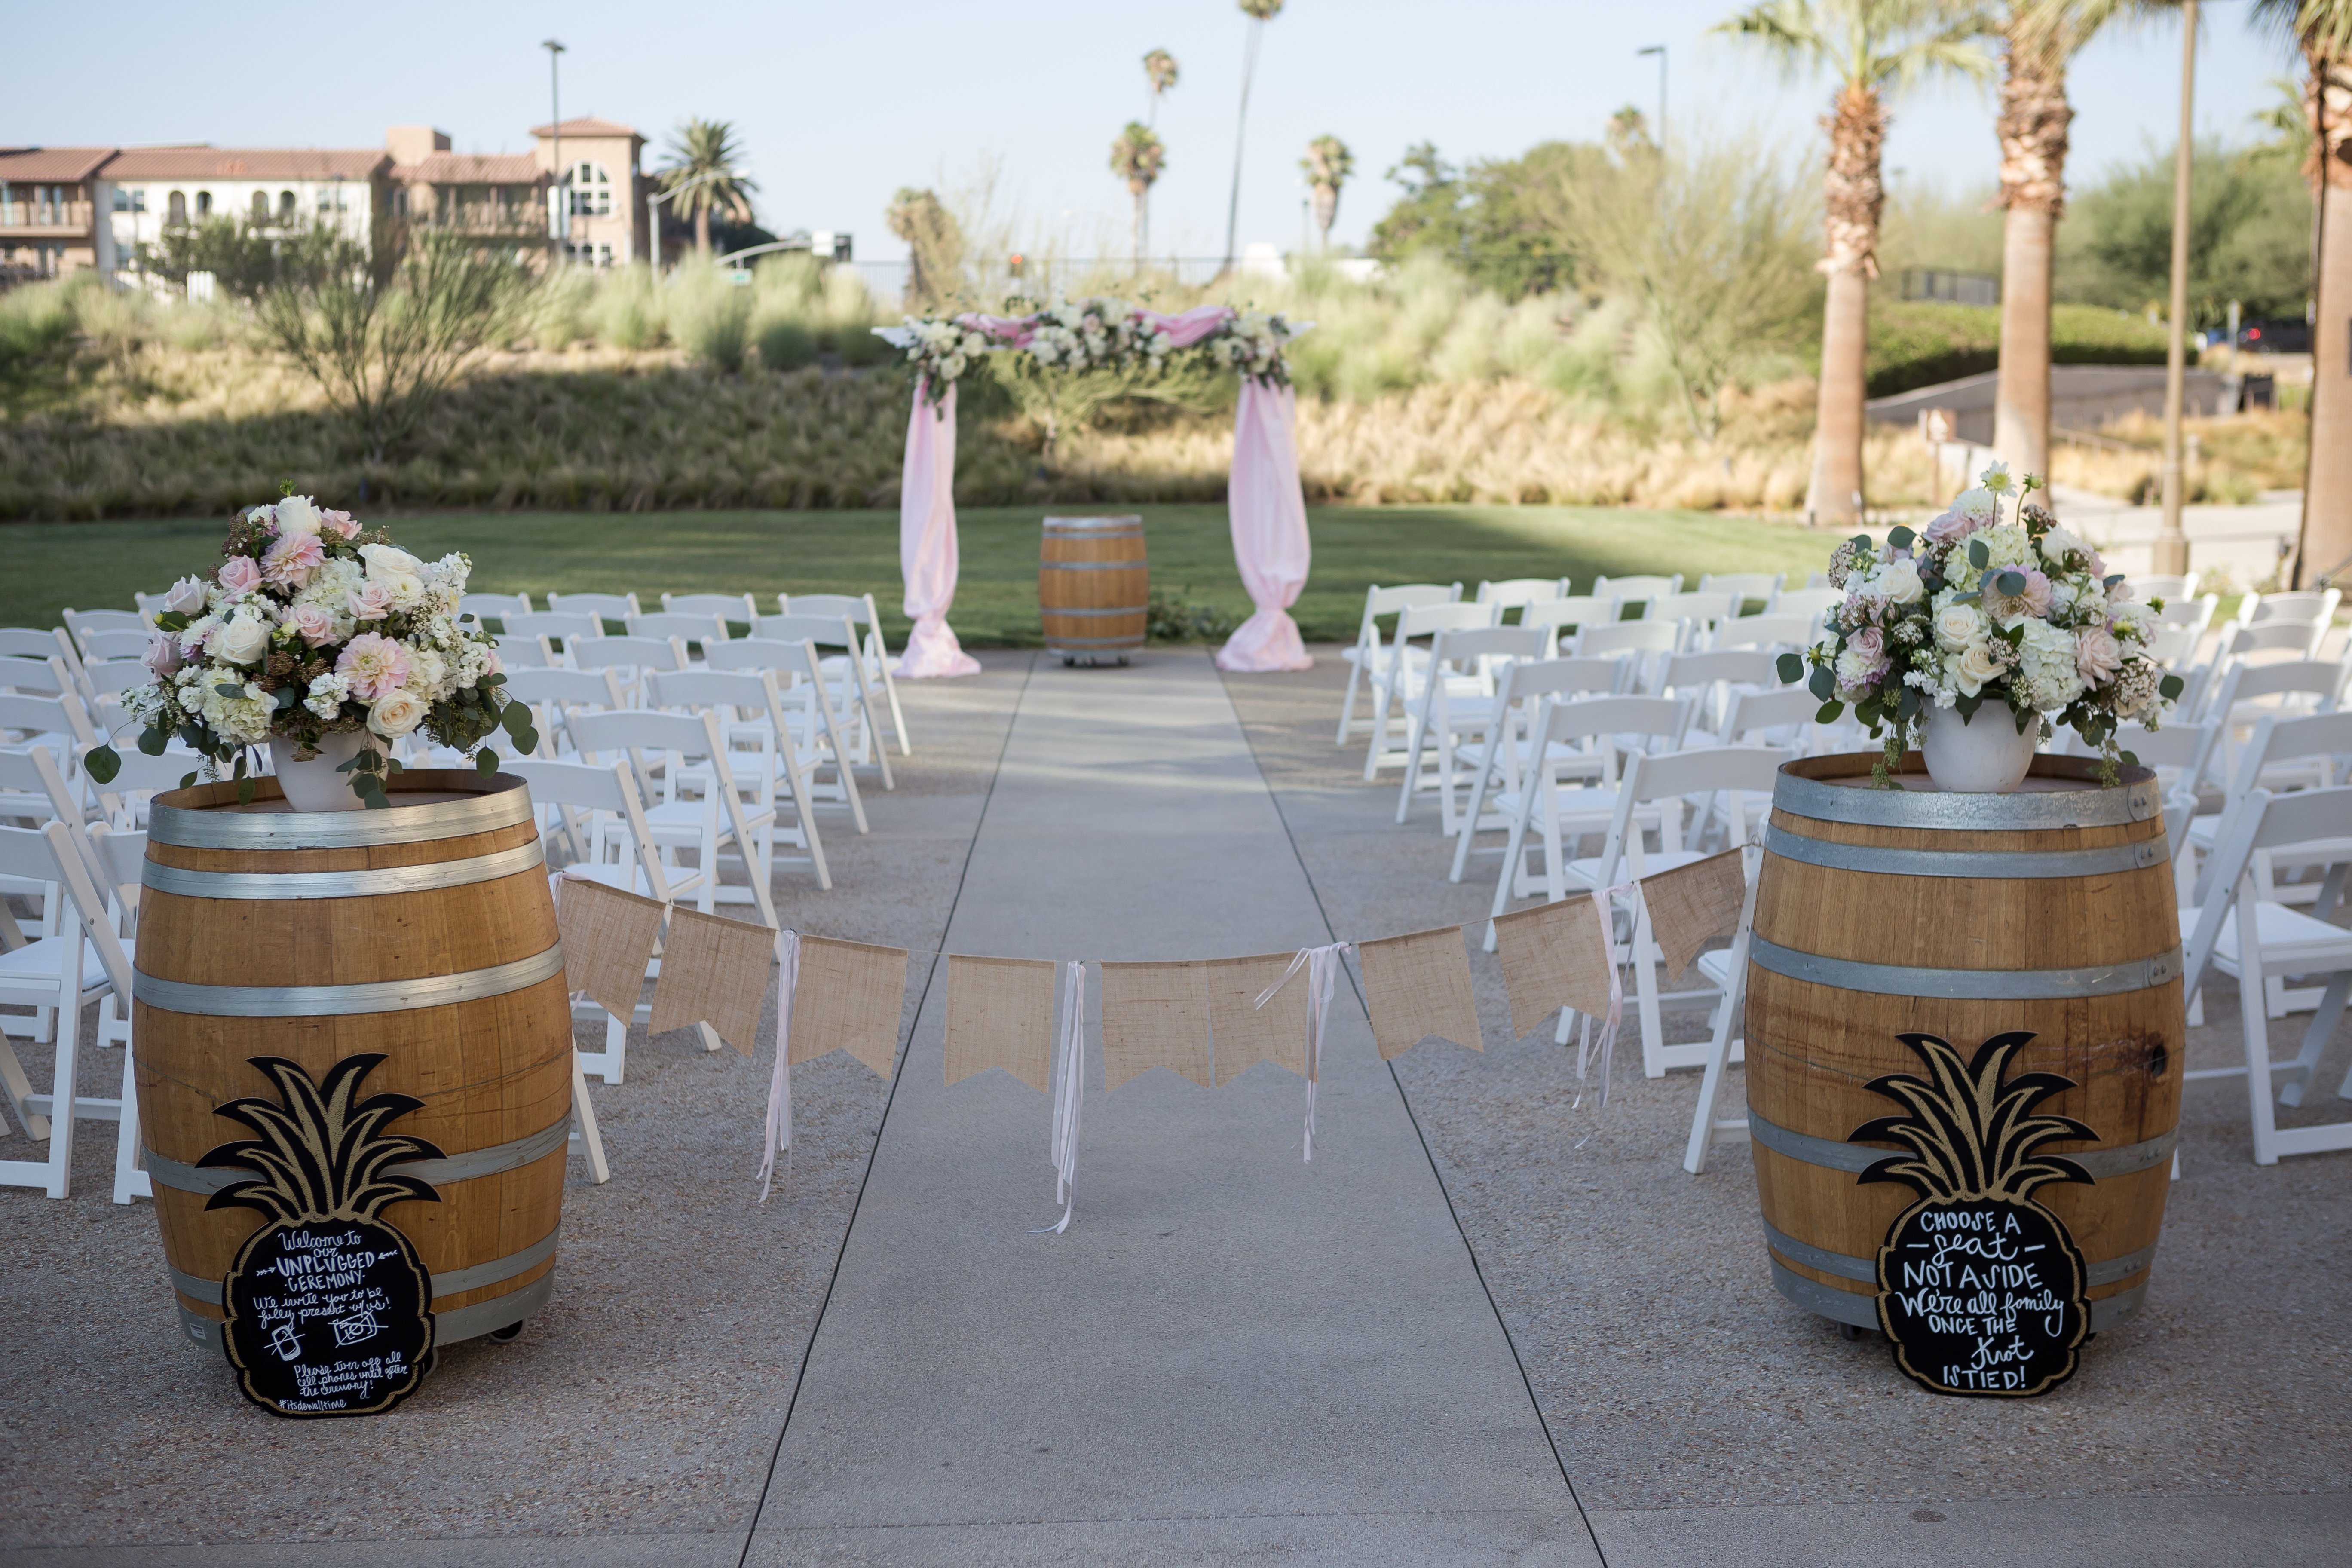 Two decorated barrels at seating for wedding